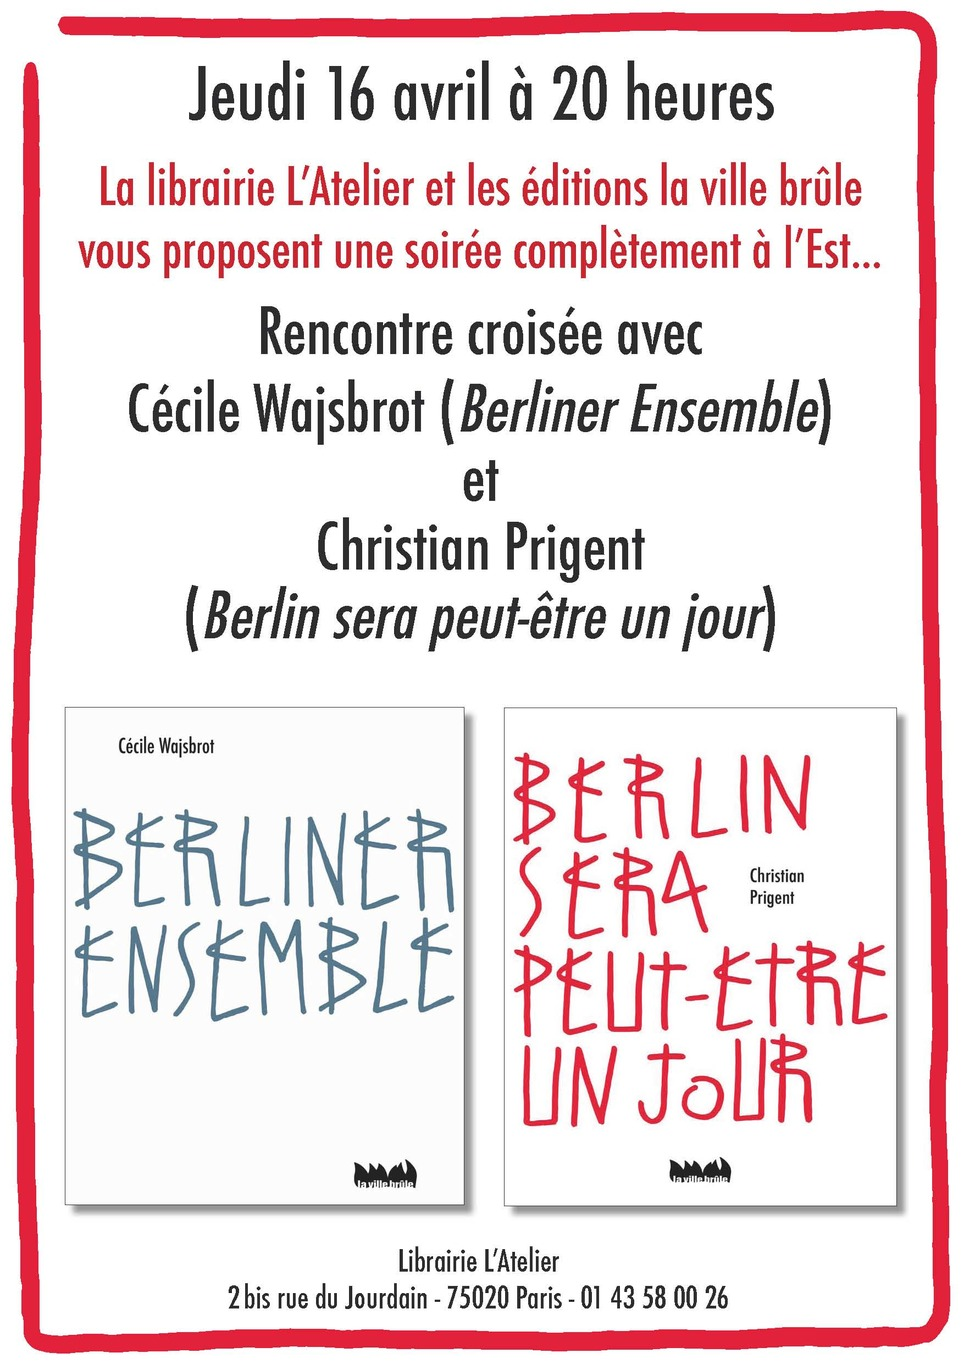 [agenda] 16 avril, Paris, Cécile Wajsbrot et Christian Prigent | Poezibao | Scoop.it